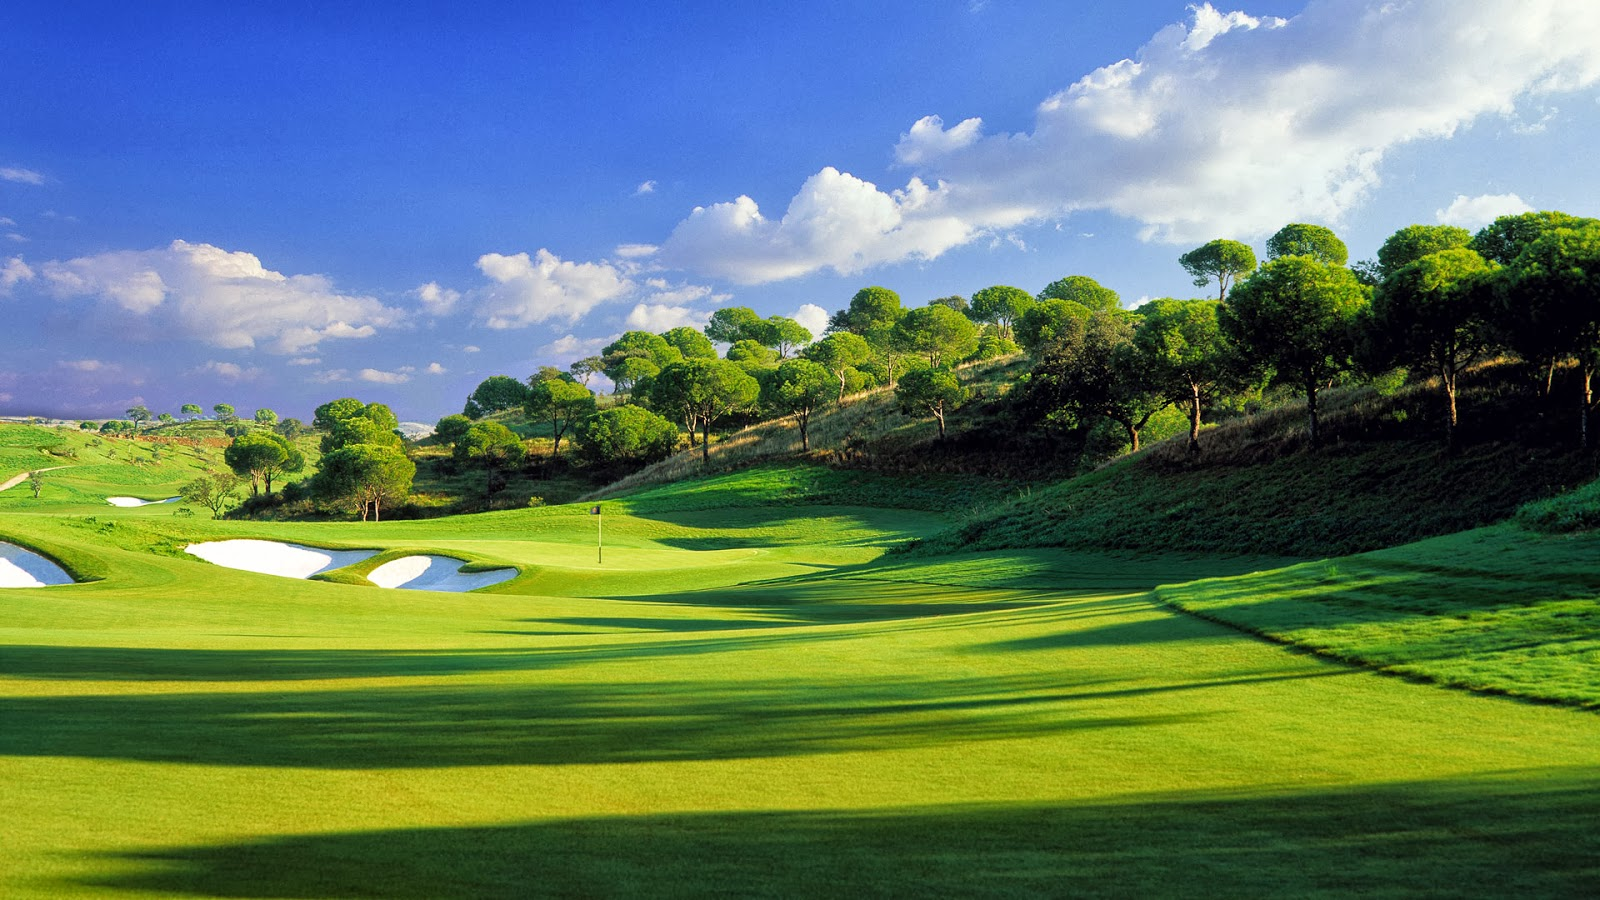 Golf HD Wallpapers HD Wallpapers 360 1600x900